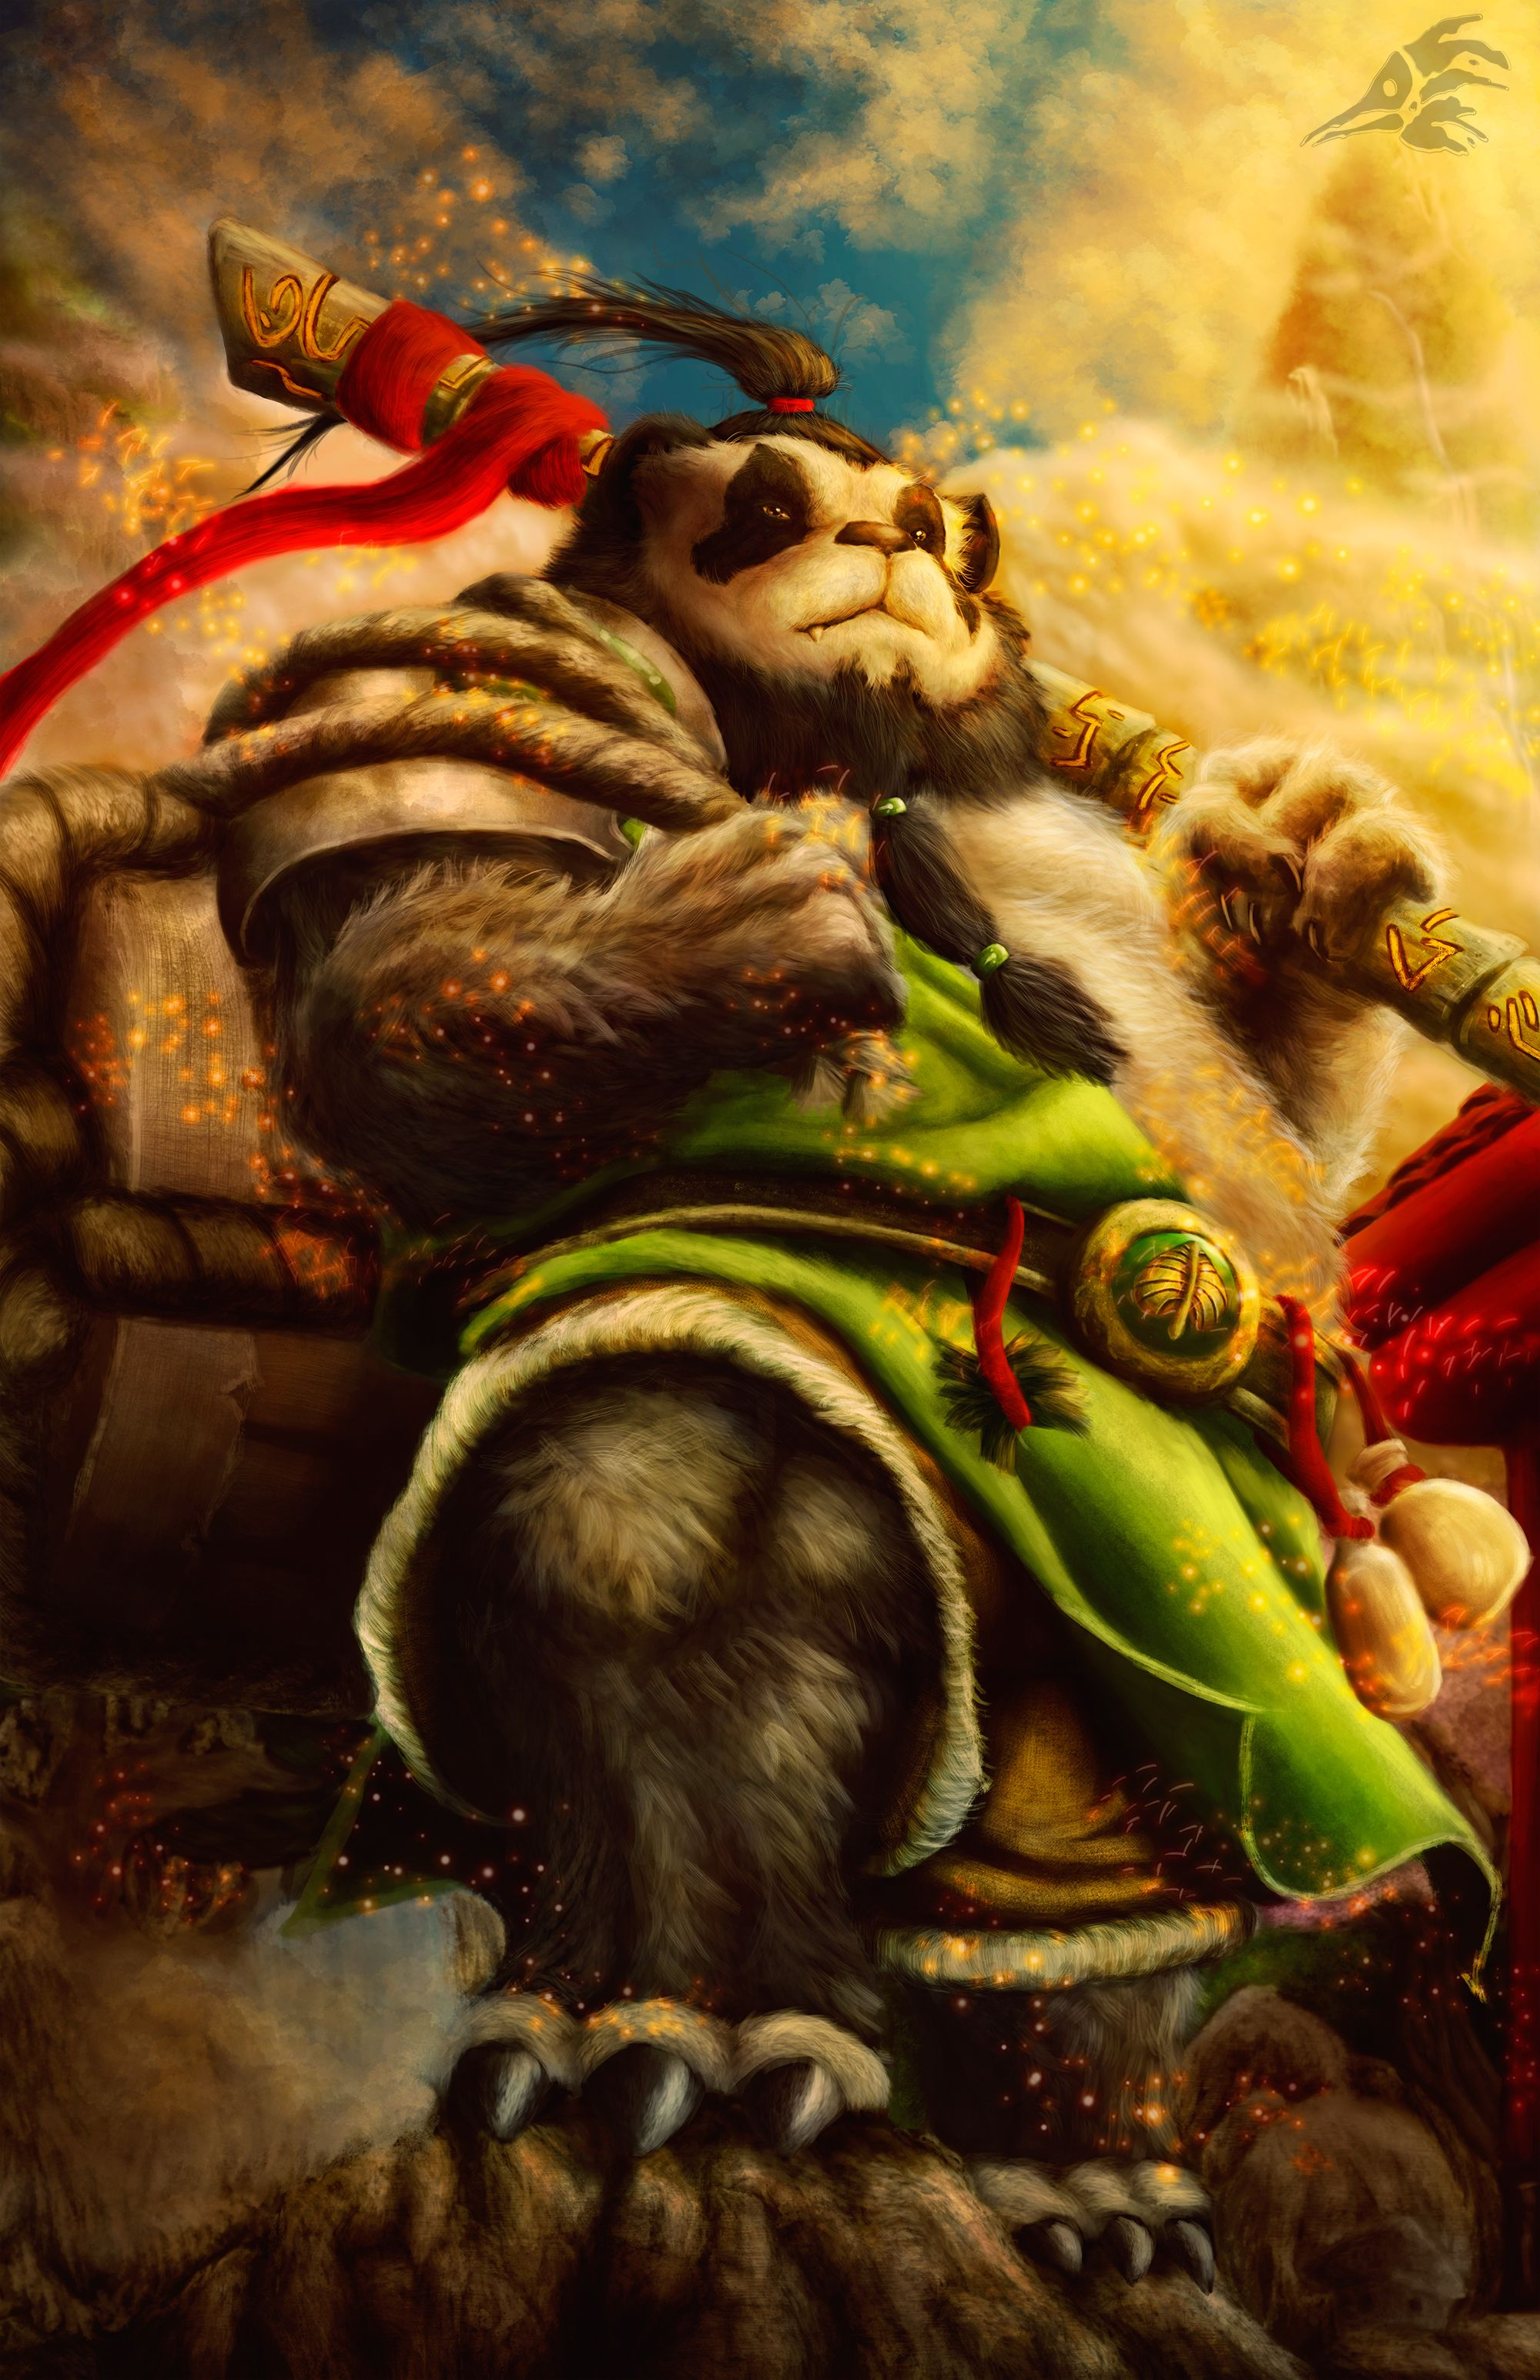 Pin by Aphoenix on PandarenS in 2019 | Warcraft art, World ...